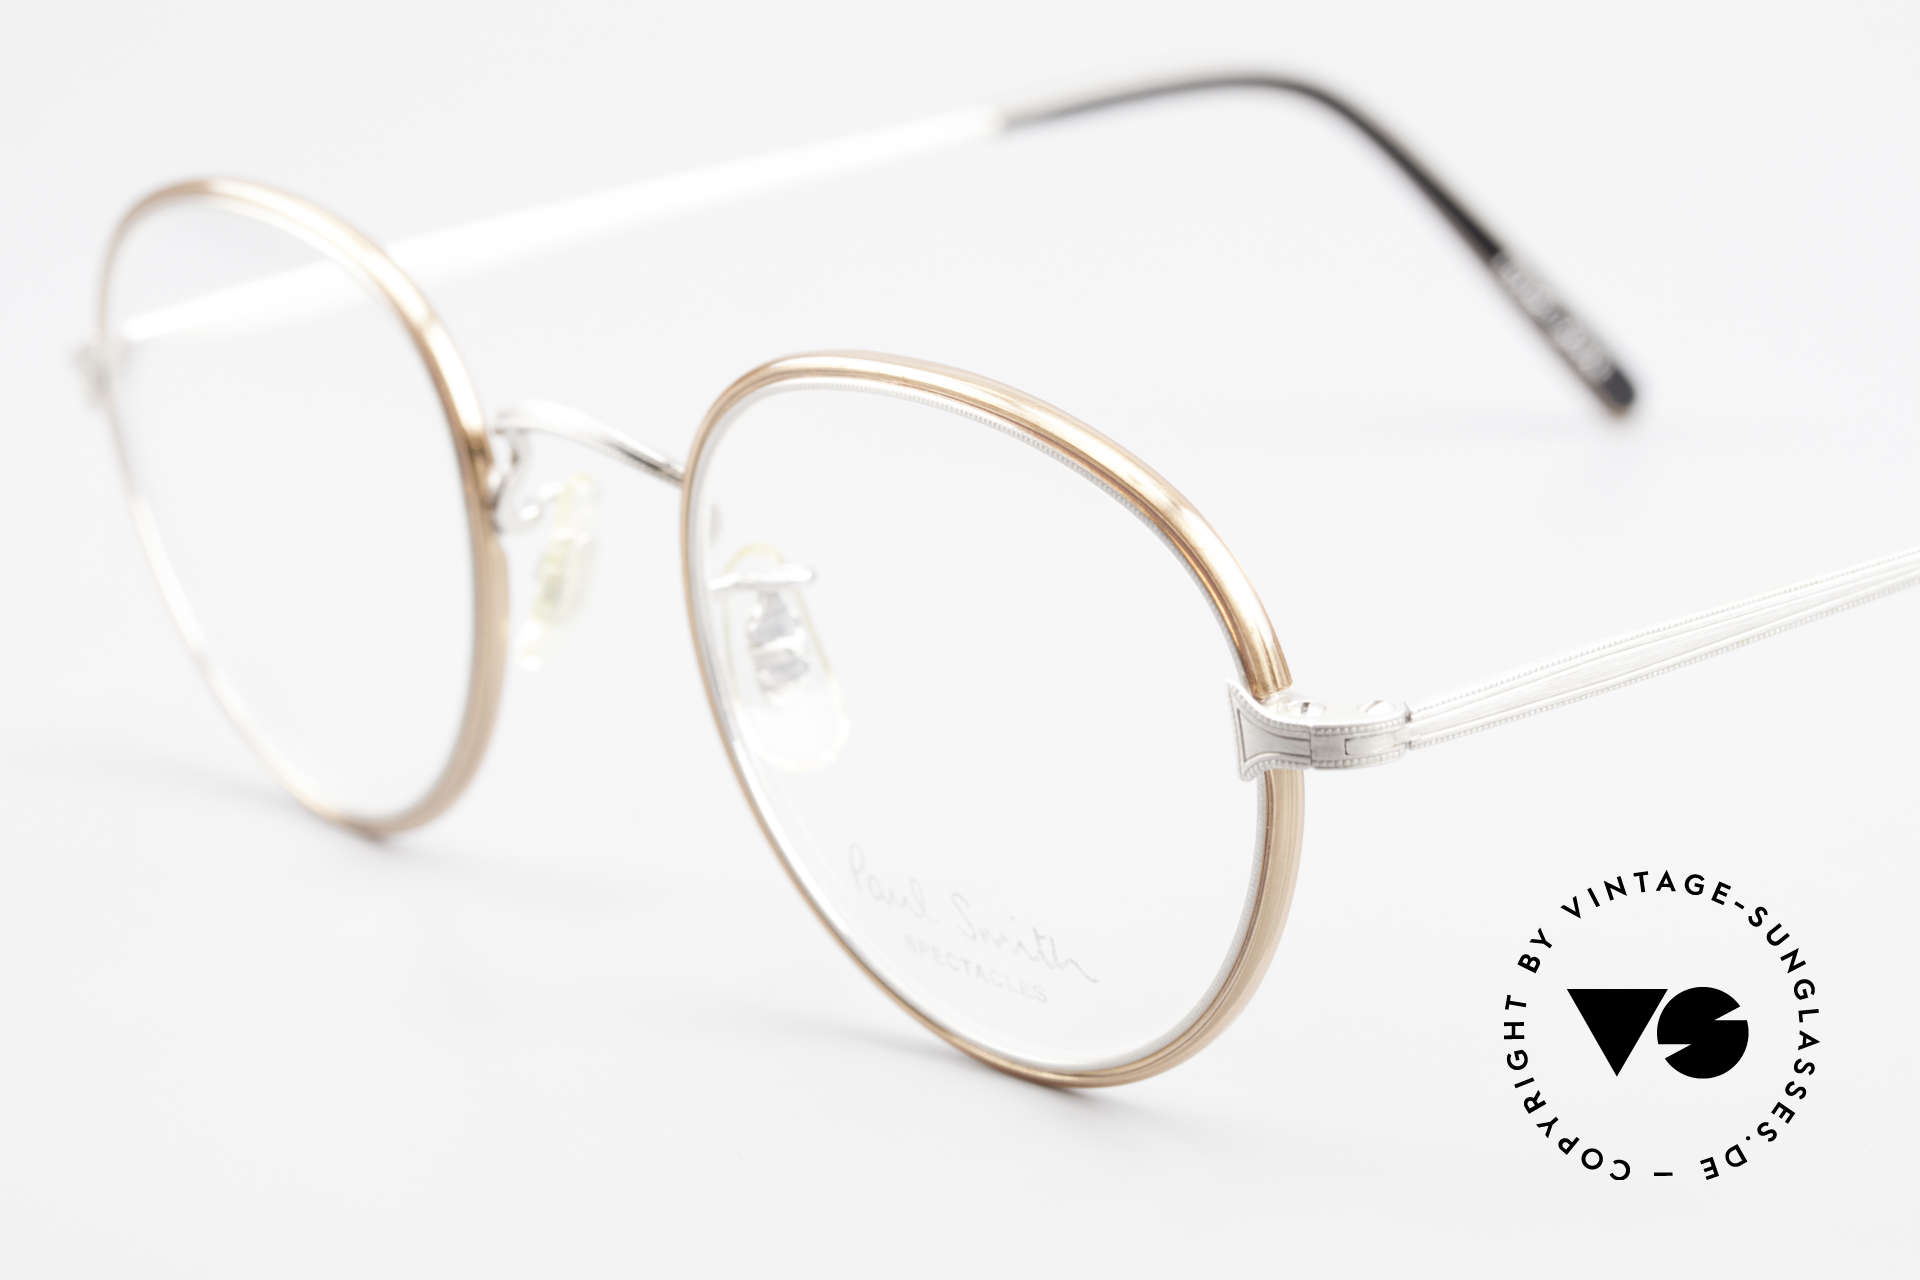 Paul Smith PSR109 Old Panto Frame Made in Japan, timeless design for men and TOP-NOTCH craftsmanship, Made for Men